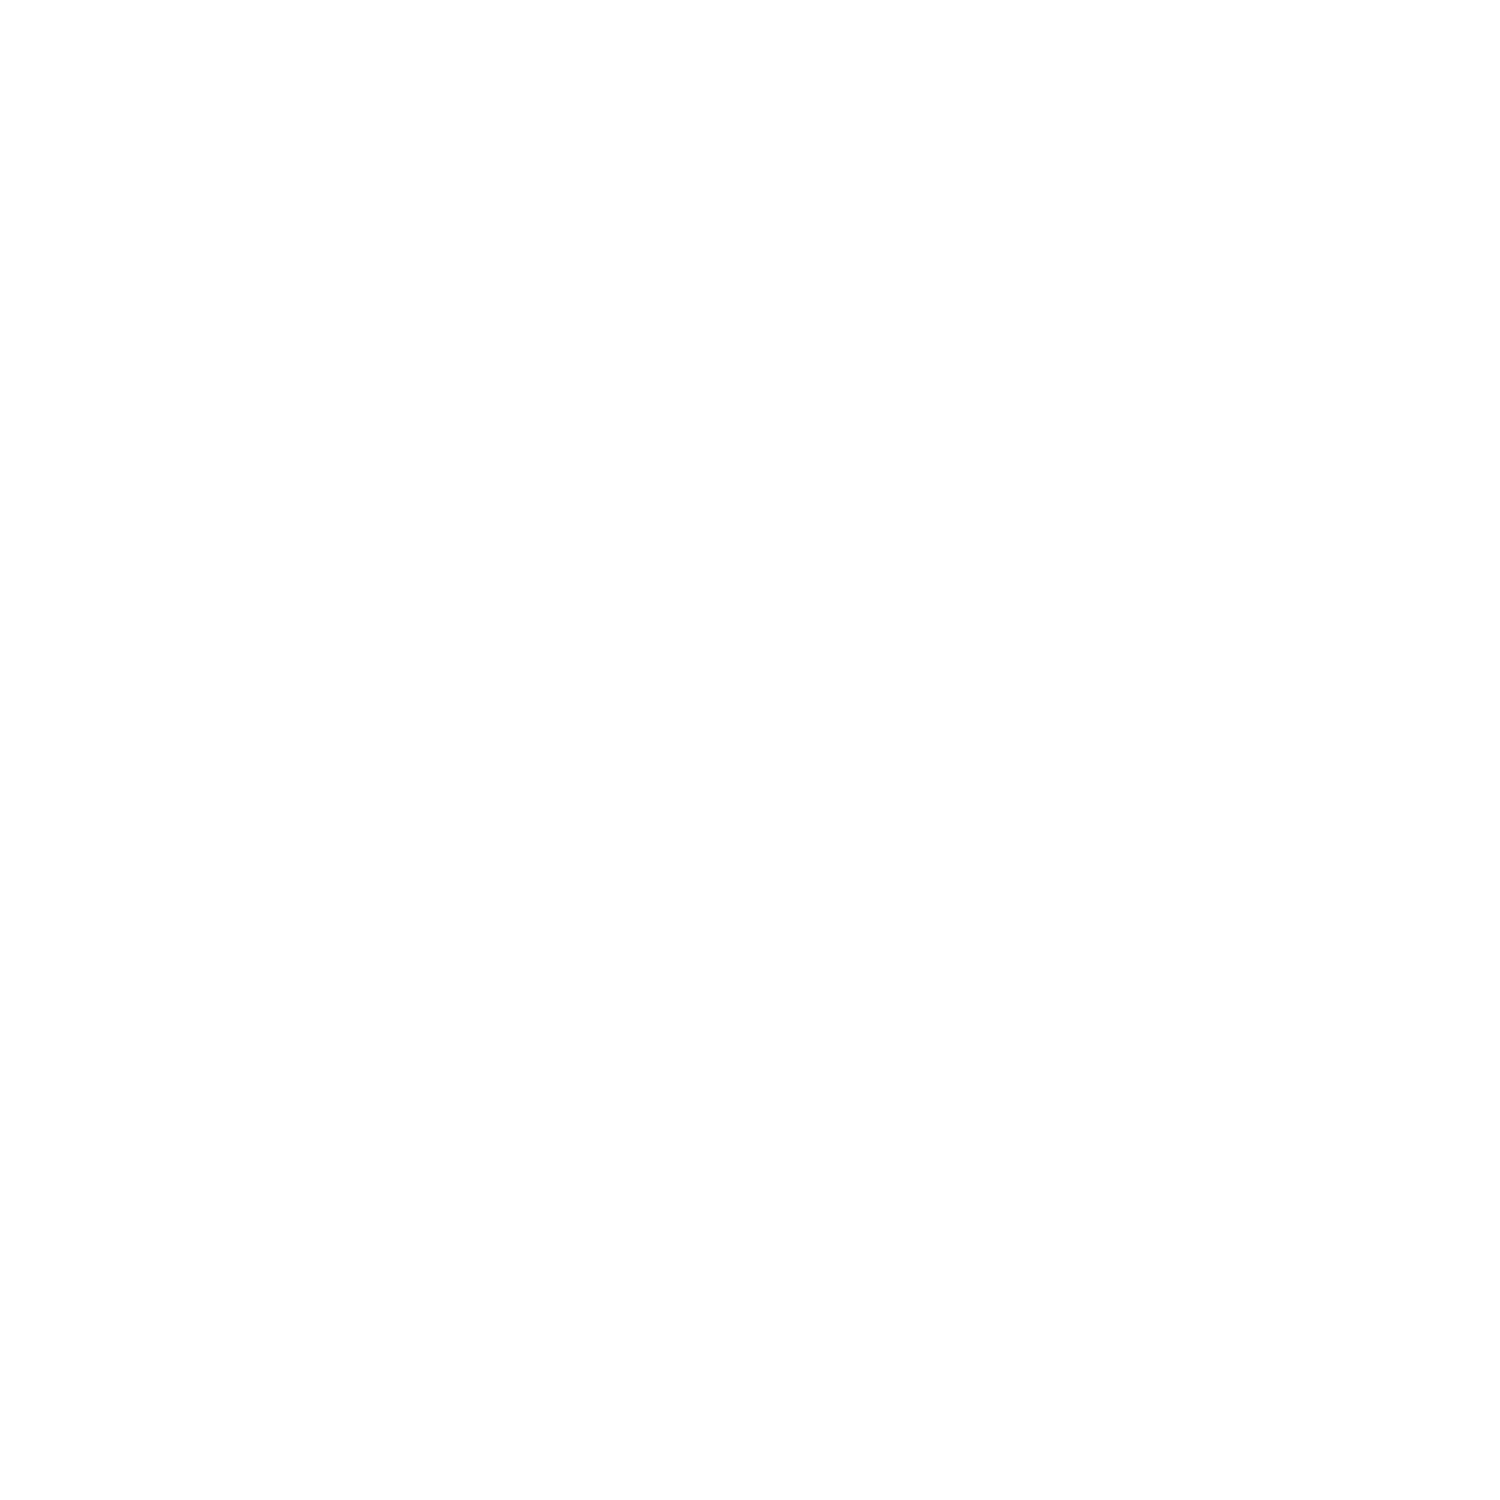 The Experience Firm